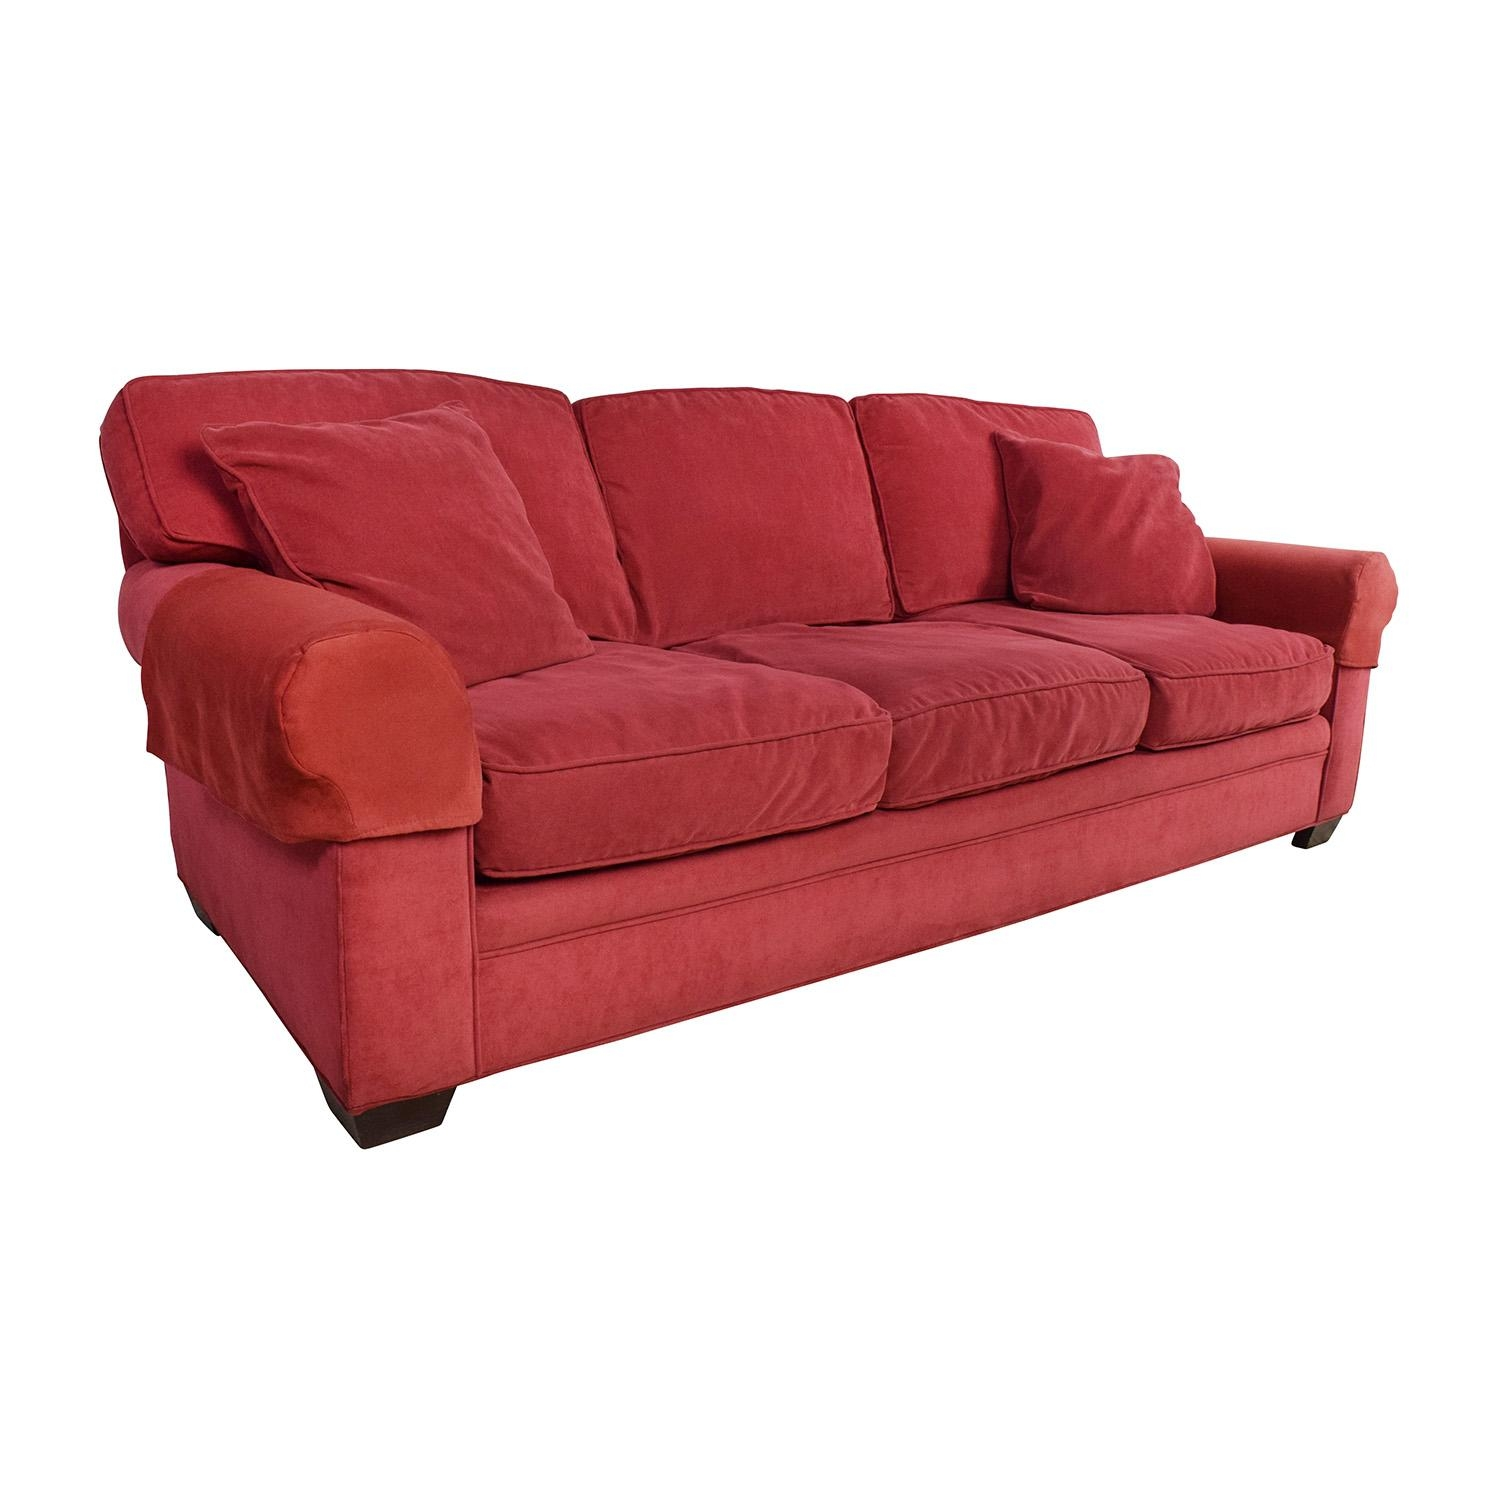 77% Off – Crate And Barrel Crate & Barrel Microfiber Suede Throughout Crate And Barrel Futon Sofas (Image 6 of 20)